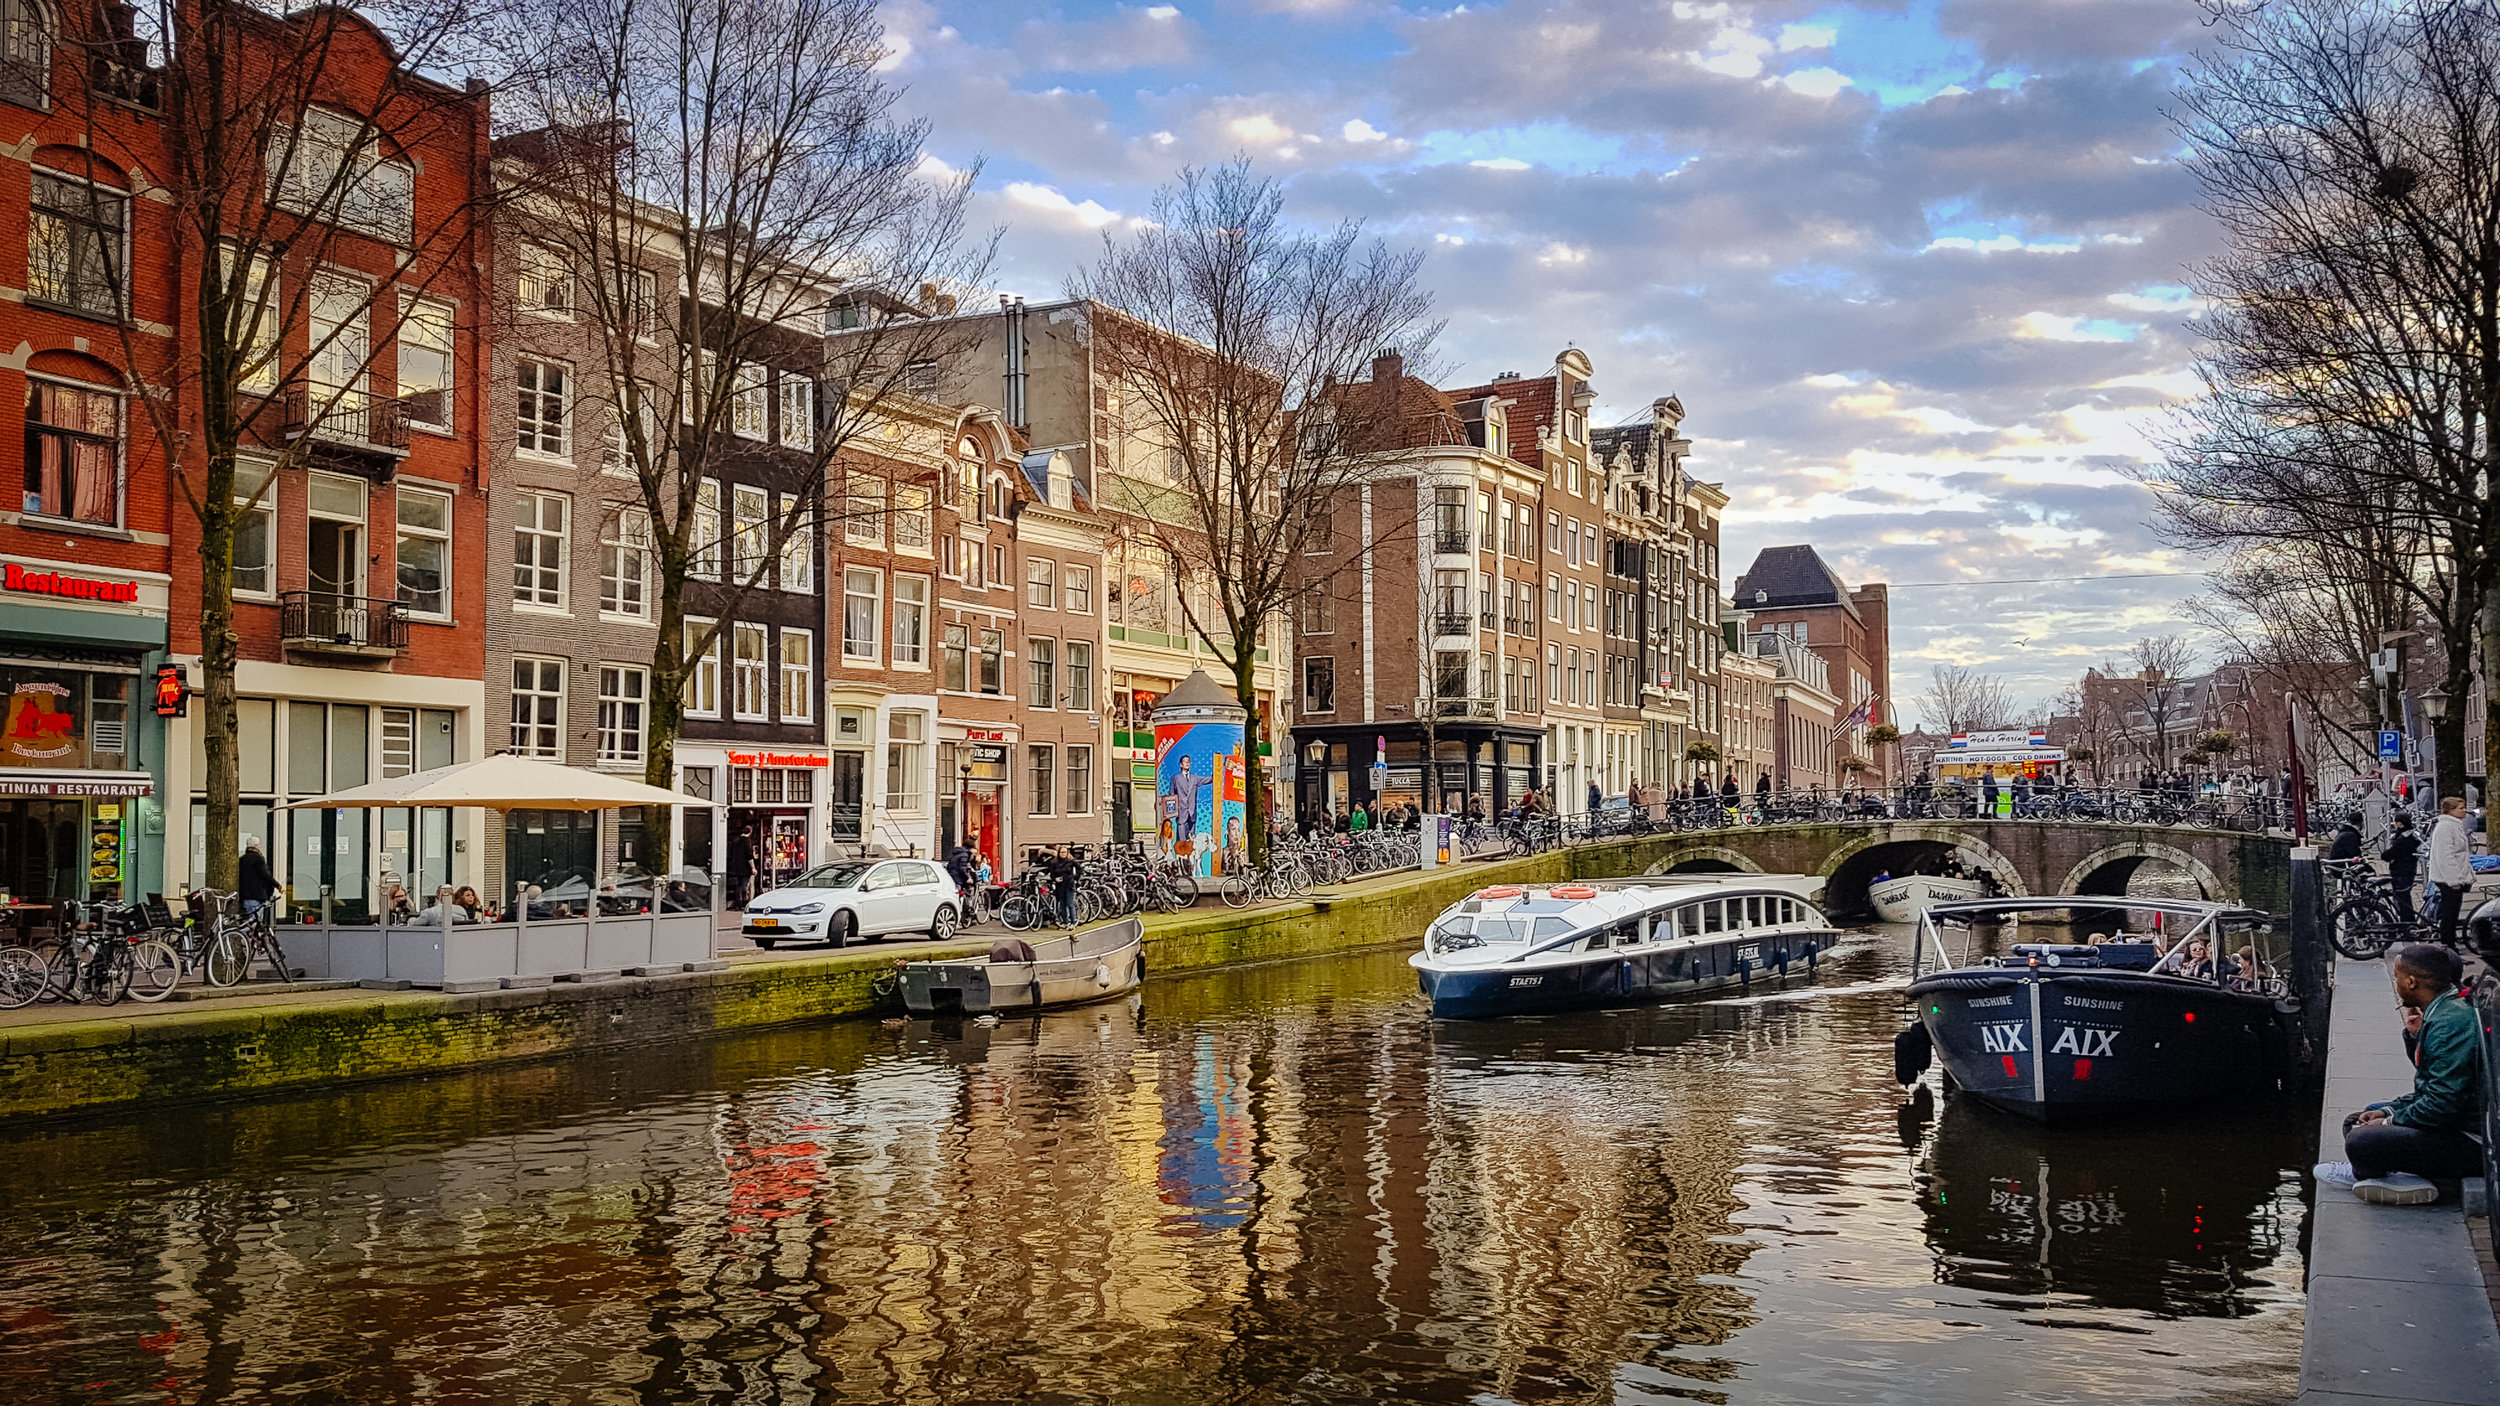 There are many, many canals... and they are all gorgeous.